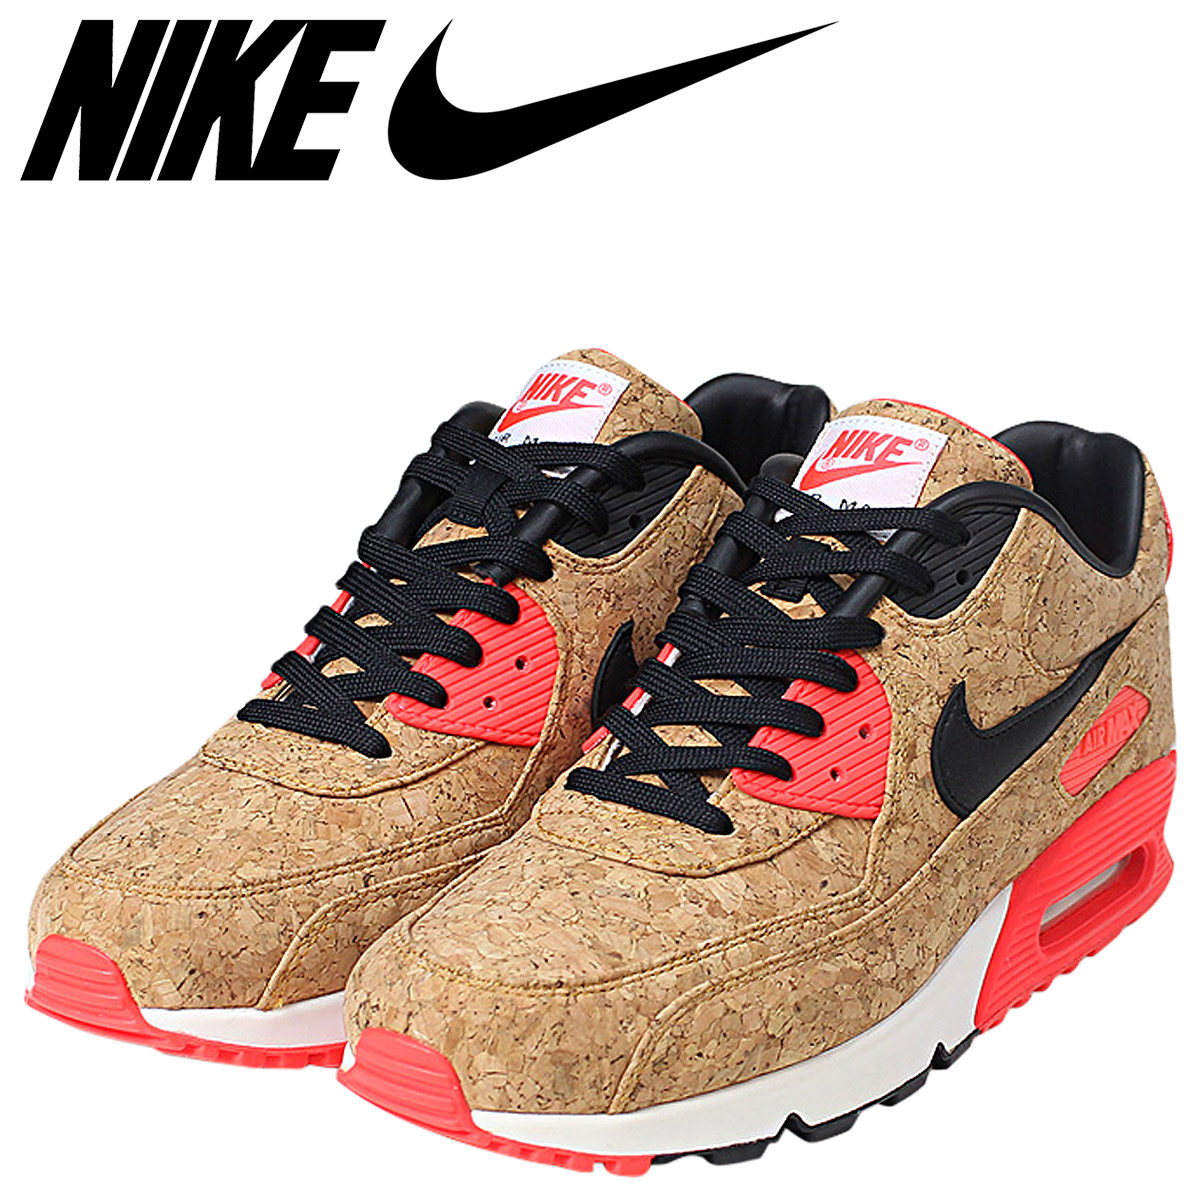 SOLD OUT NIKE Kie Ney AMAX 90 AIR MAX sneakers AIRMAX 90 ANNIVERSARY CORK  men 725 b2e3f08ad